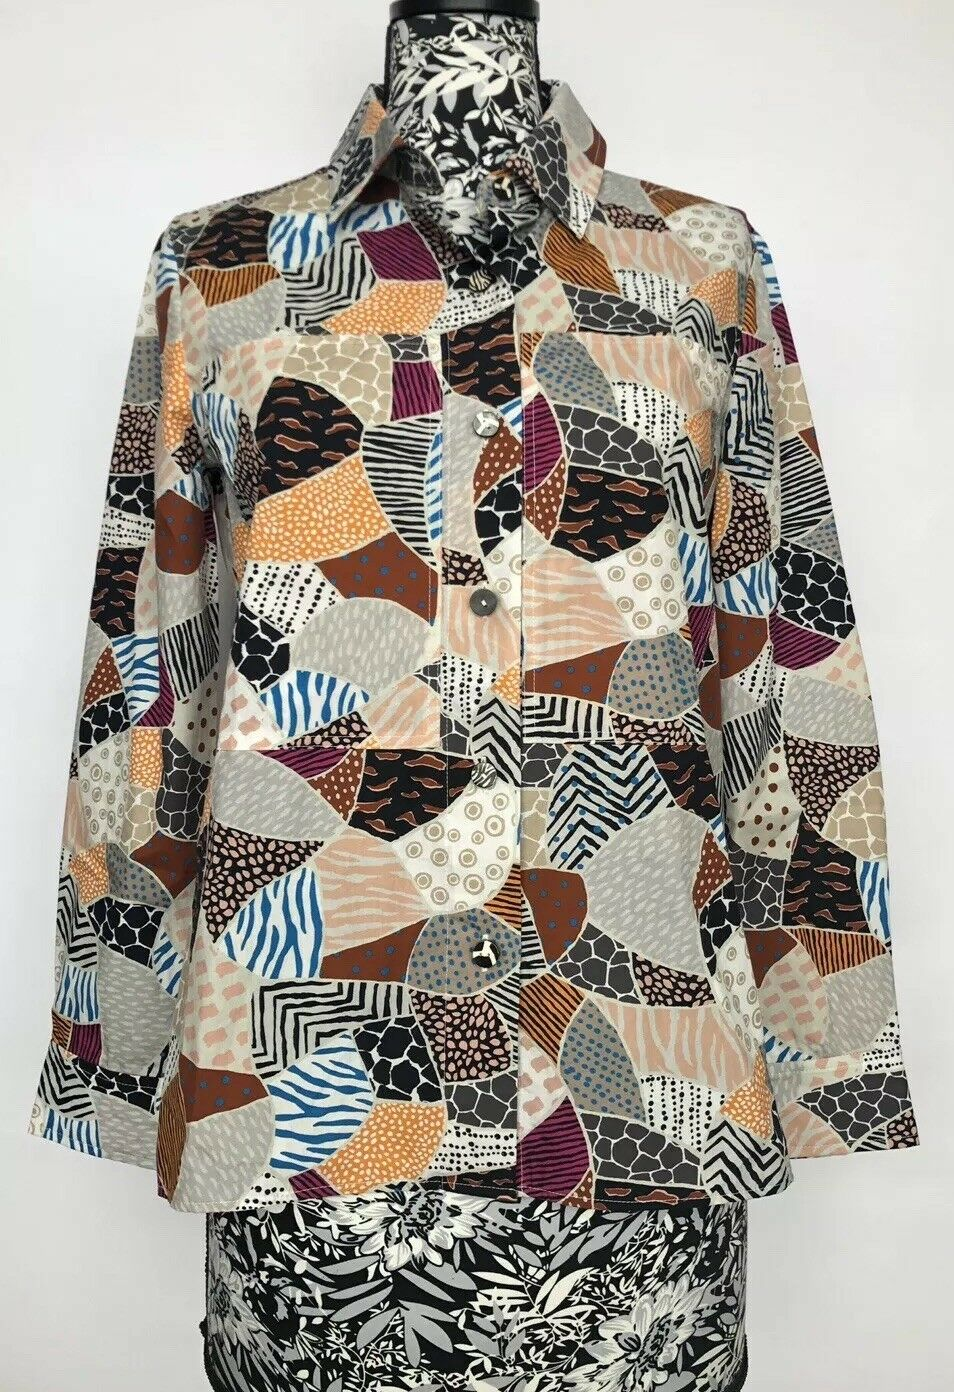 Edun damen Shirt Größe 2 NWT Printed 100% Cotton